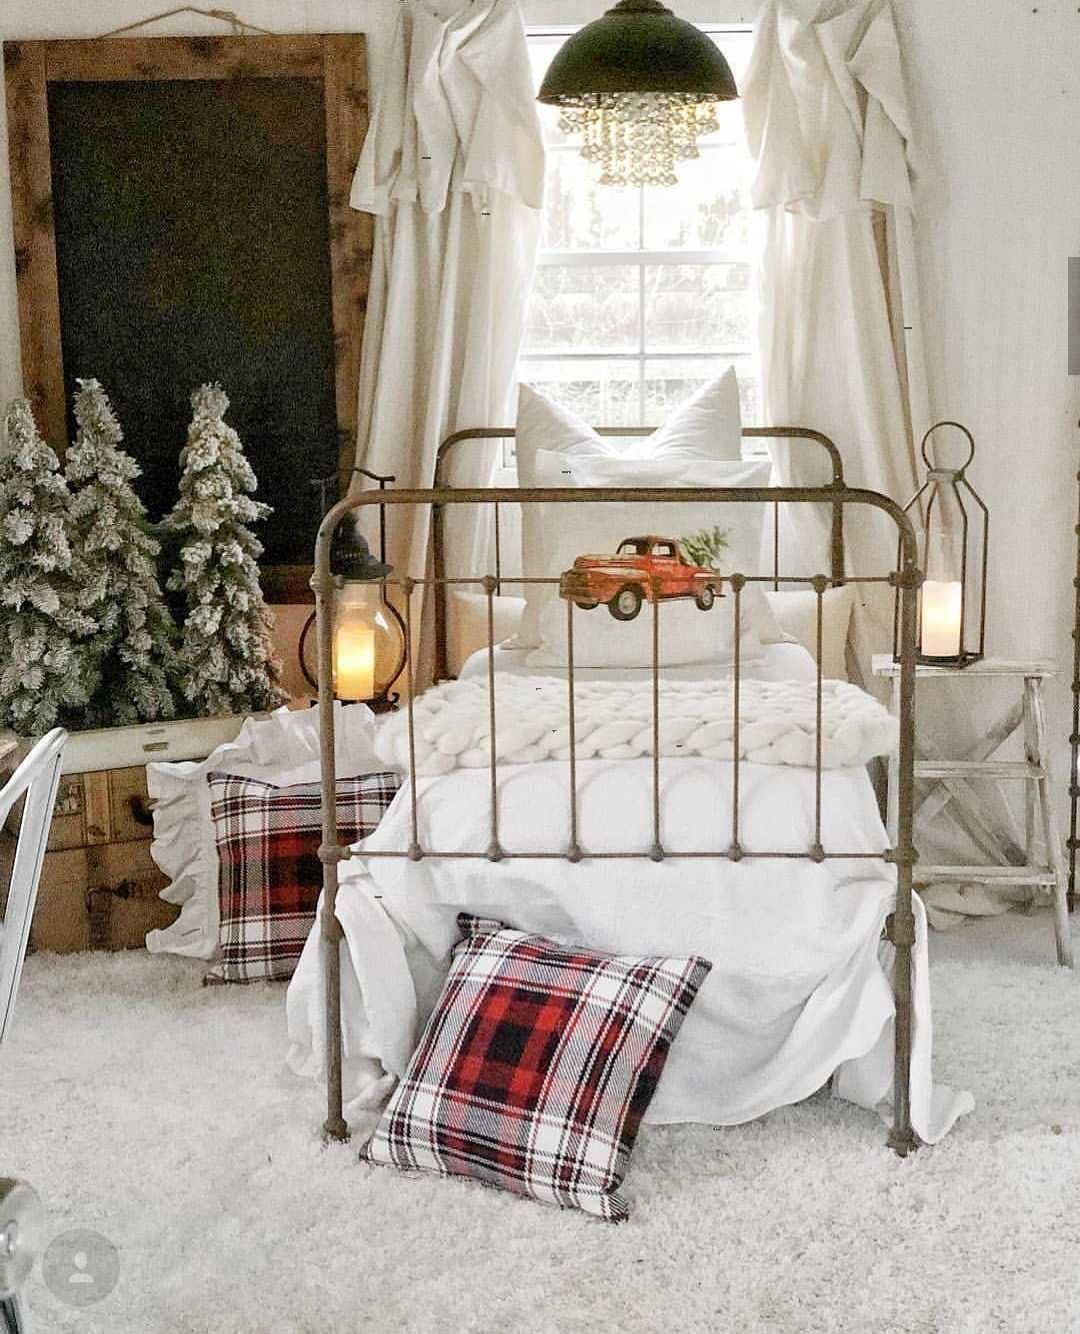 60 mesmerizing christmas bedroom decorating ideas page 60 of 65 rh pinterest com